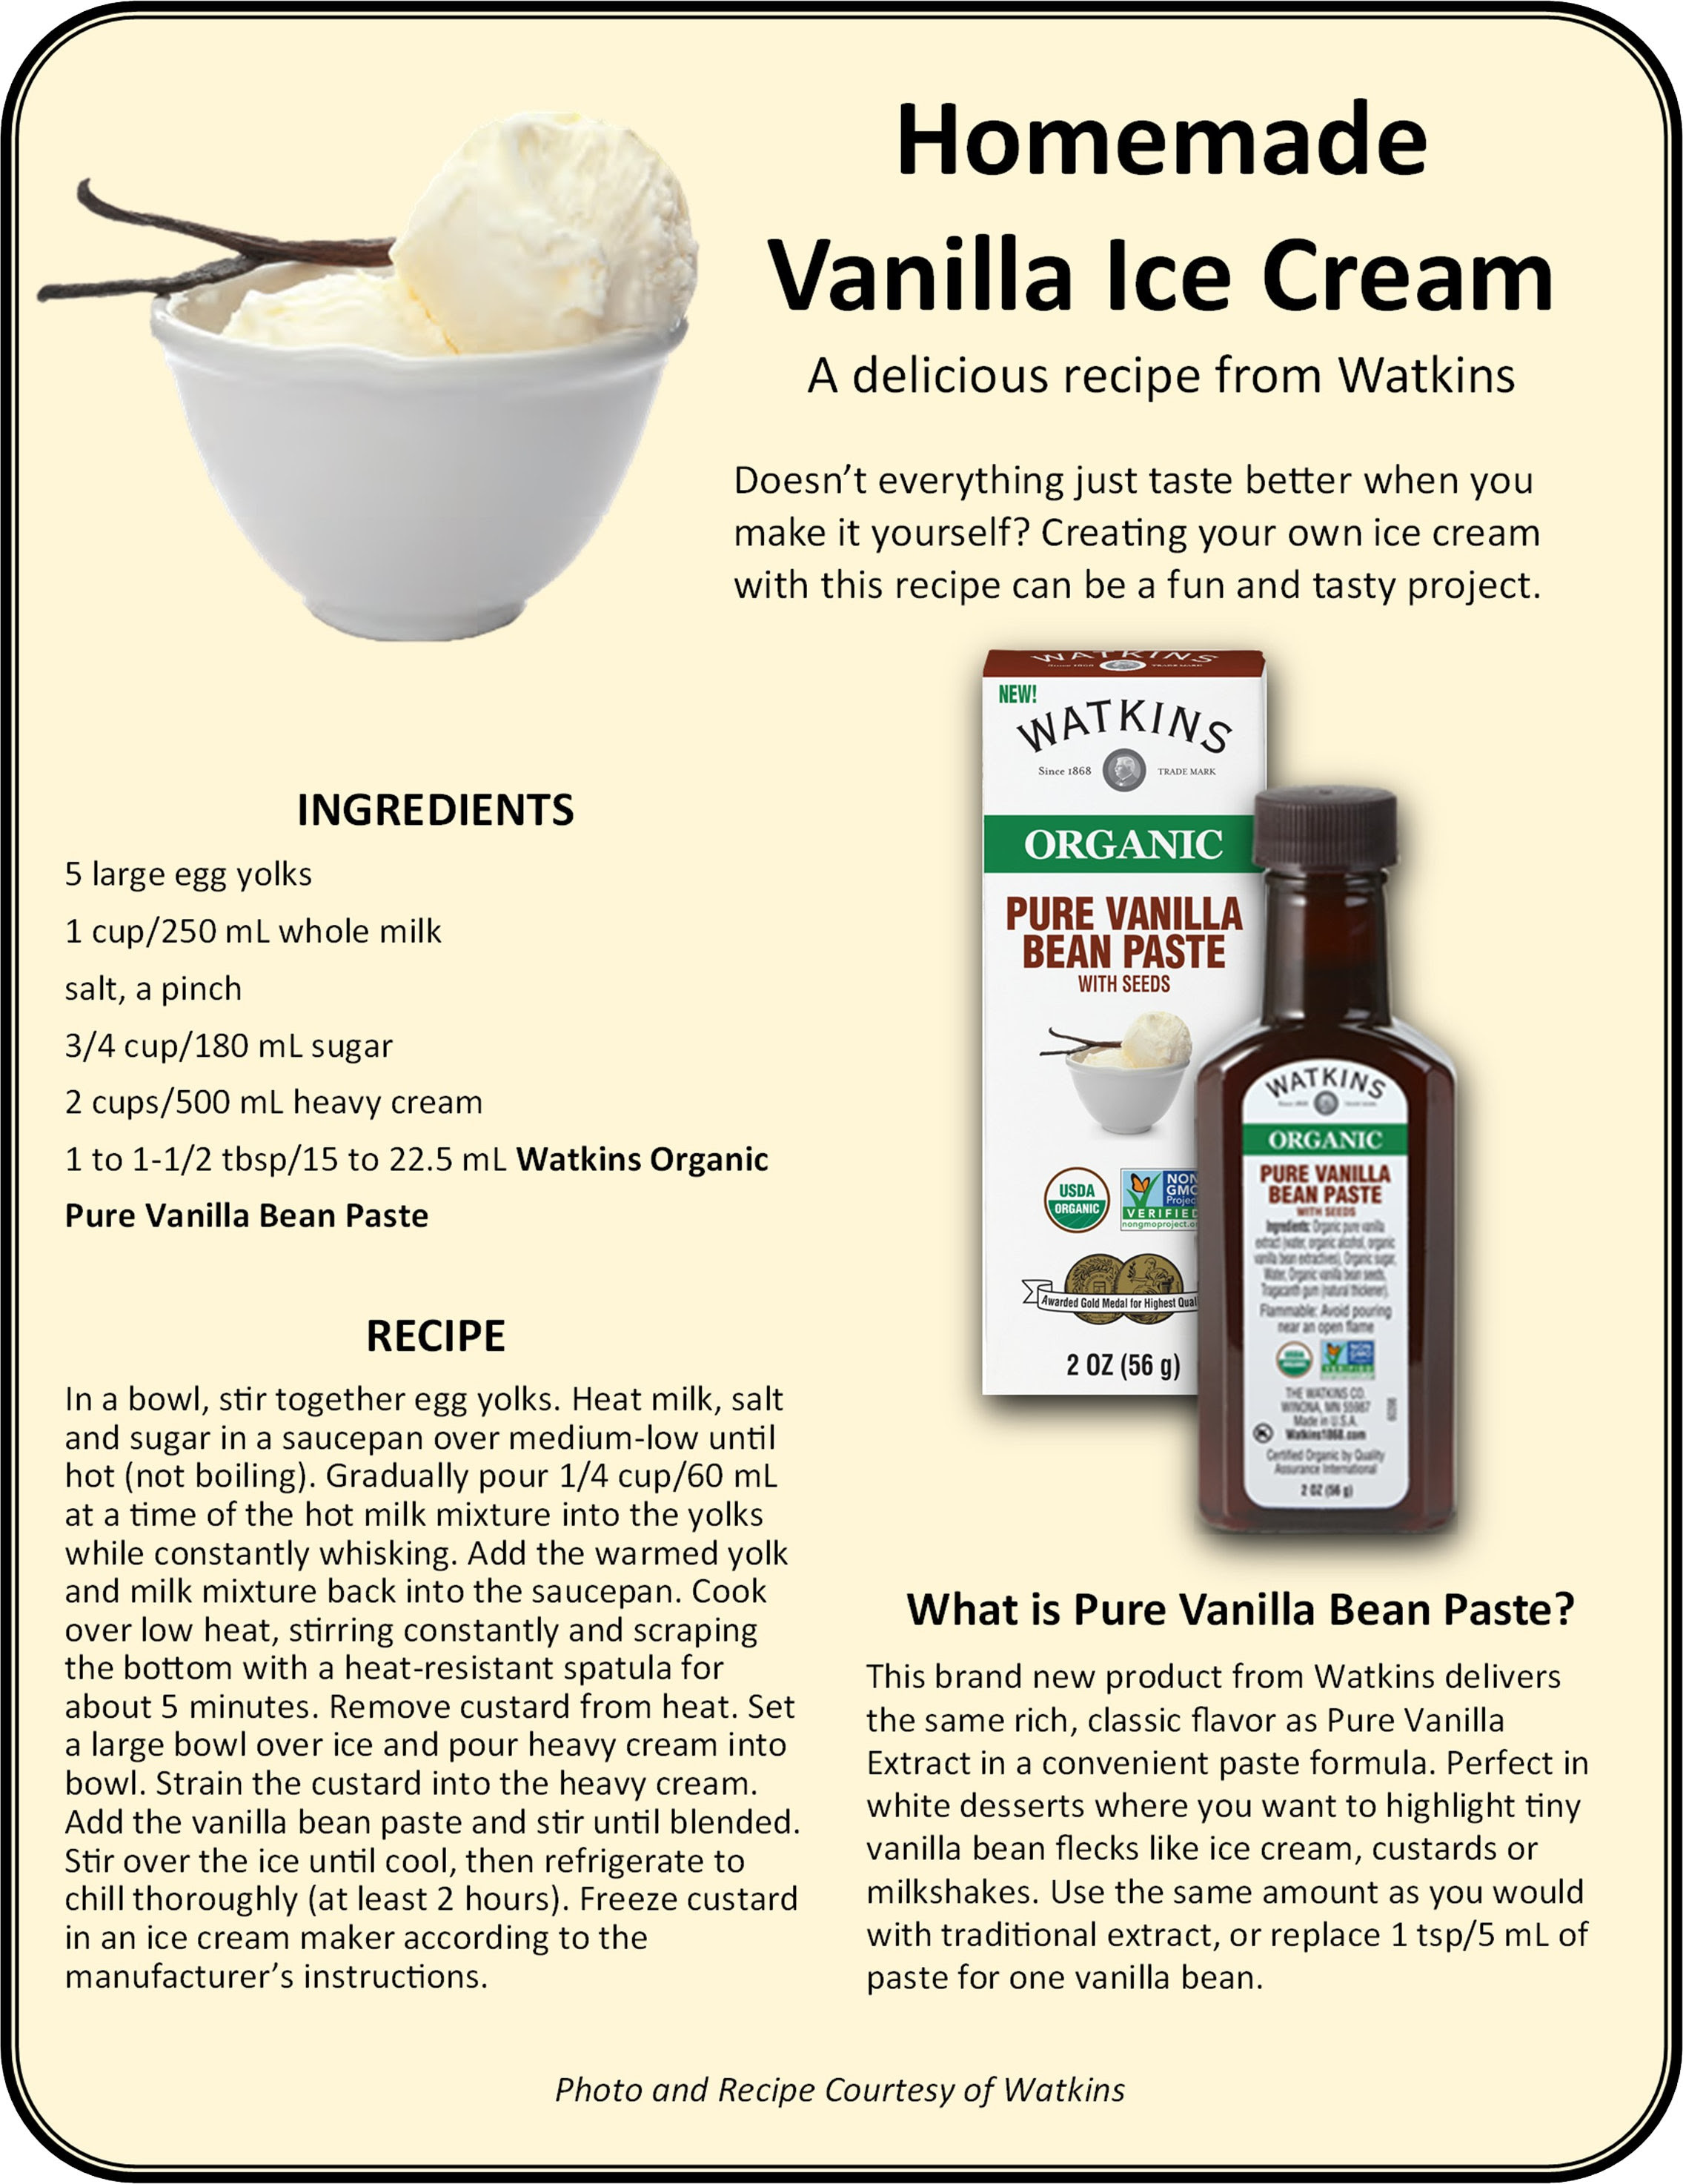 Recipe for Homemade Vanilla Ice Cream